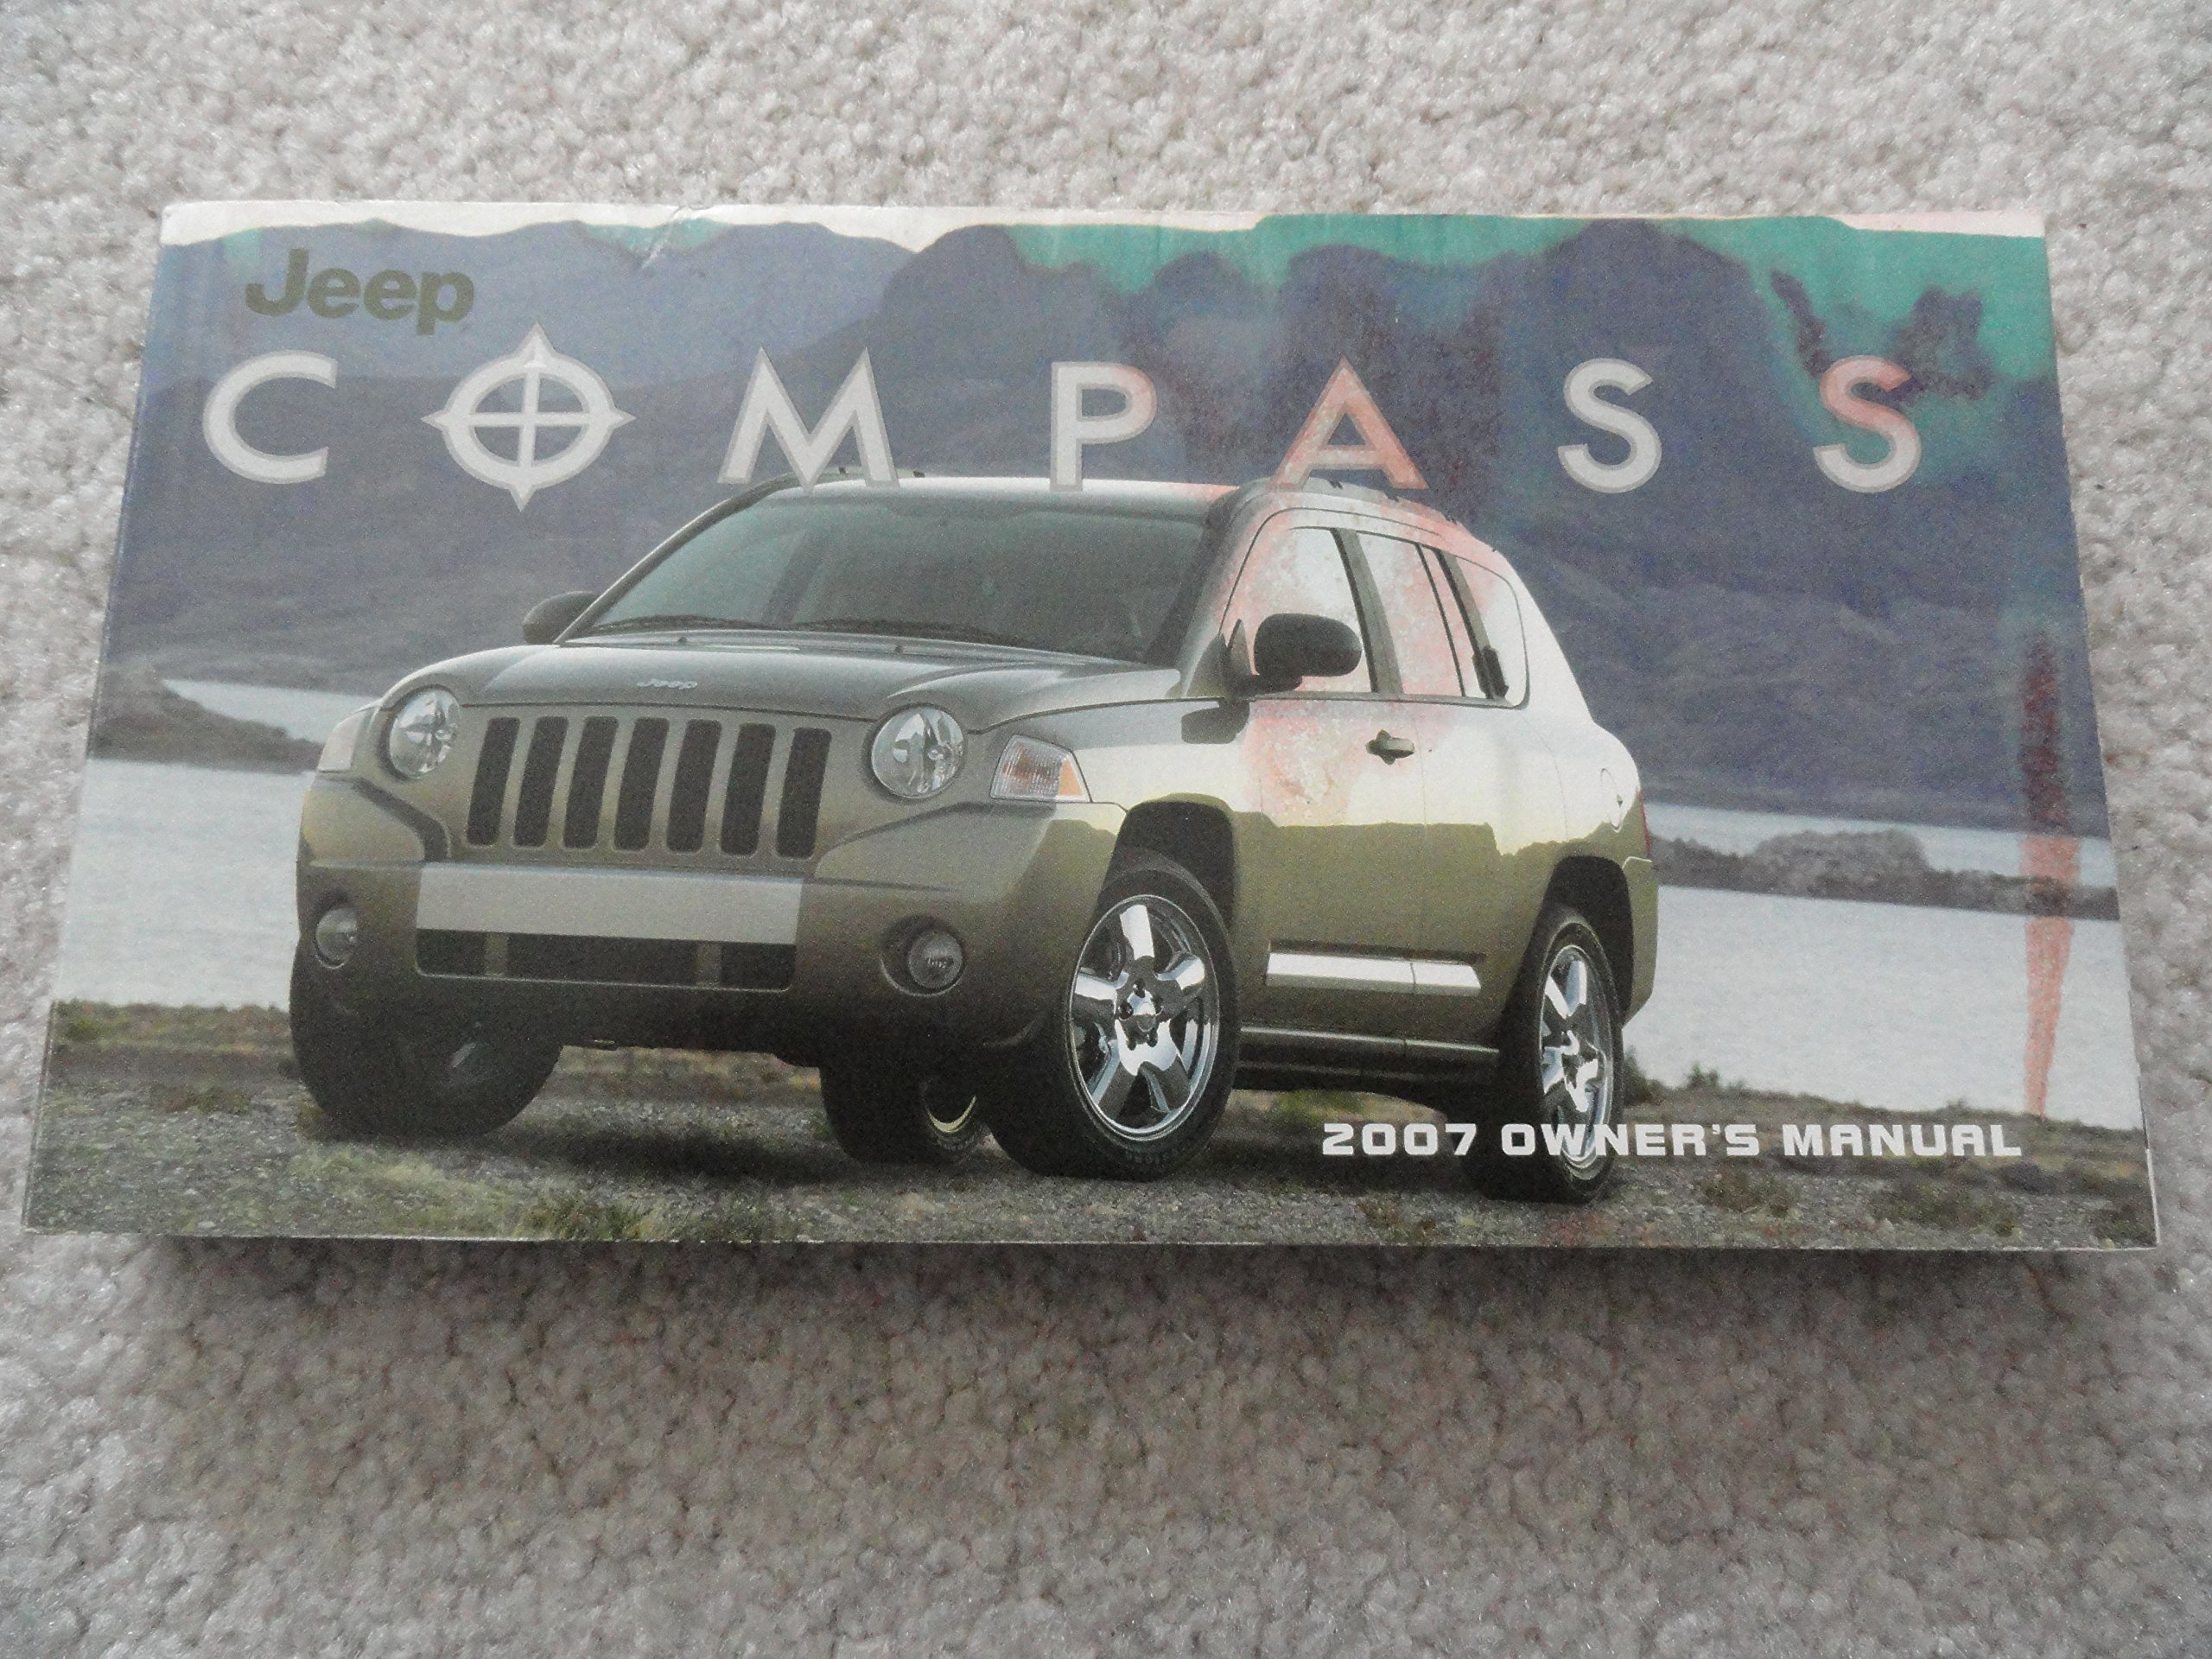 2007 jeep compass owners manual jeep amazon com books rh amazon com 2007 jeep compass owners manual free download 2007 jeep compass owners manual pdf